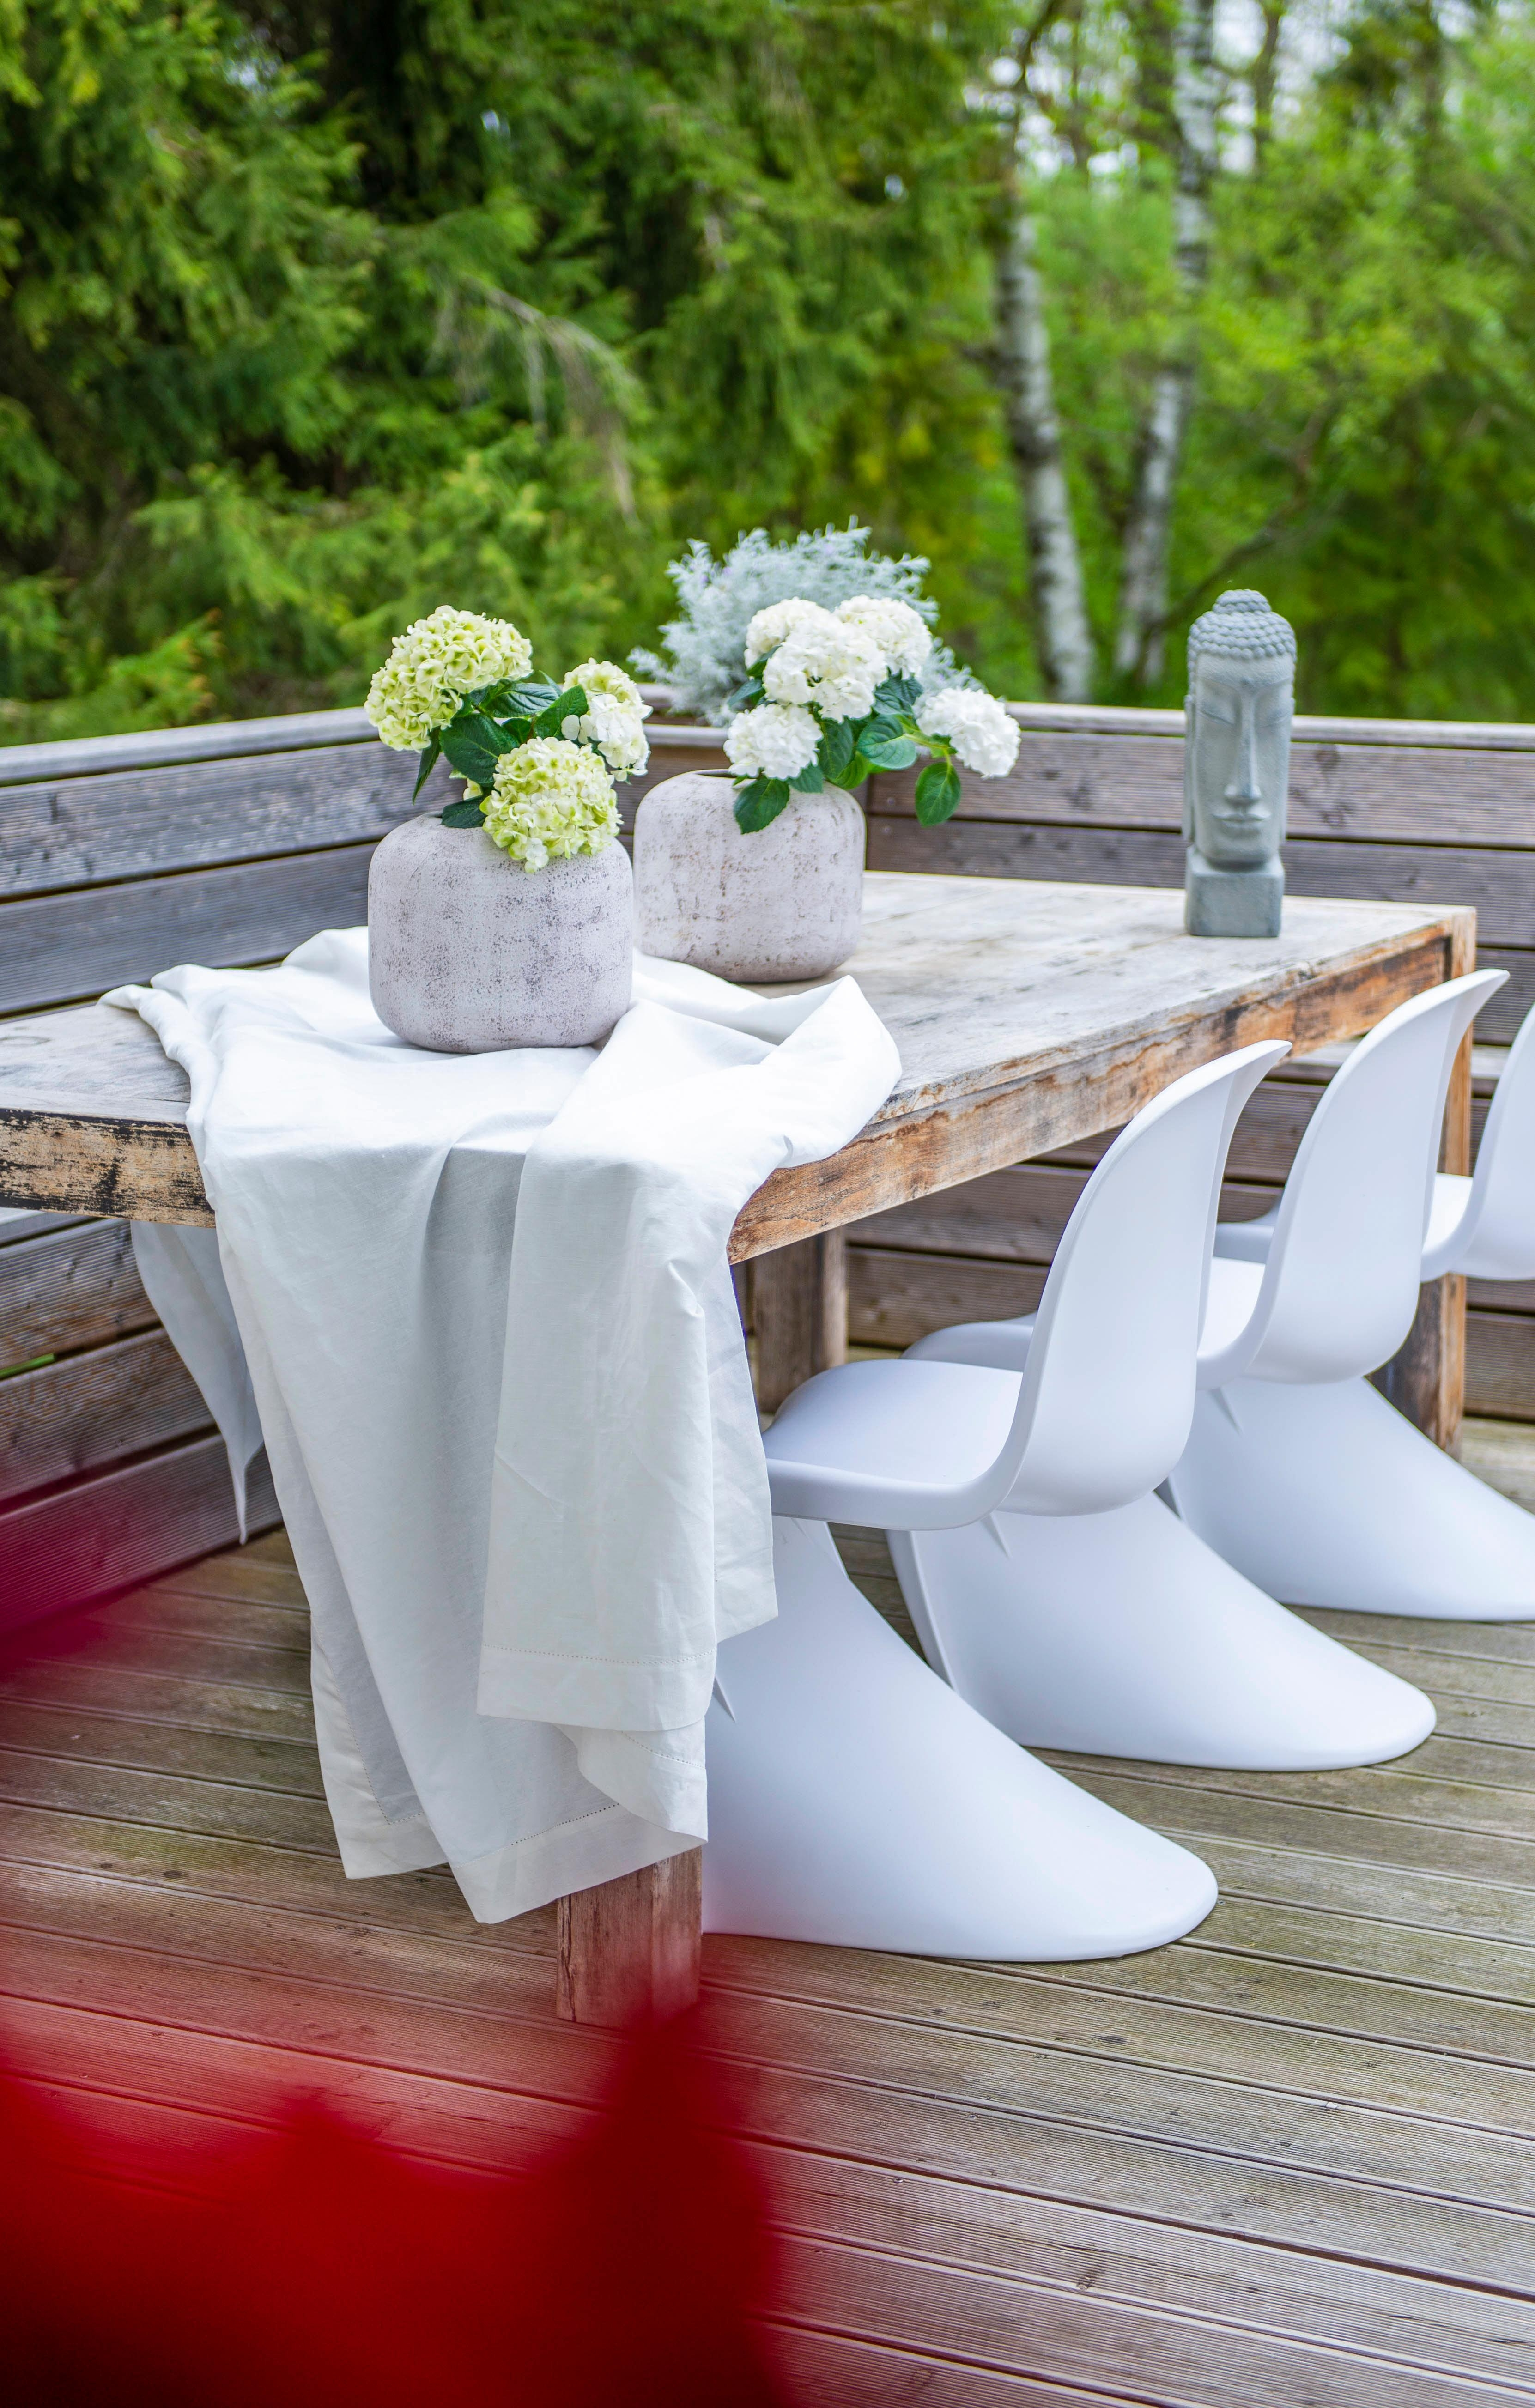 Luftschnappen auf der terrasse outdoor homestaging homestyling  91ed7cfd 600b 40ce 8035 a79001f2547d